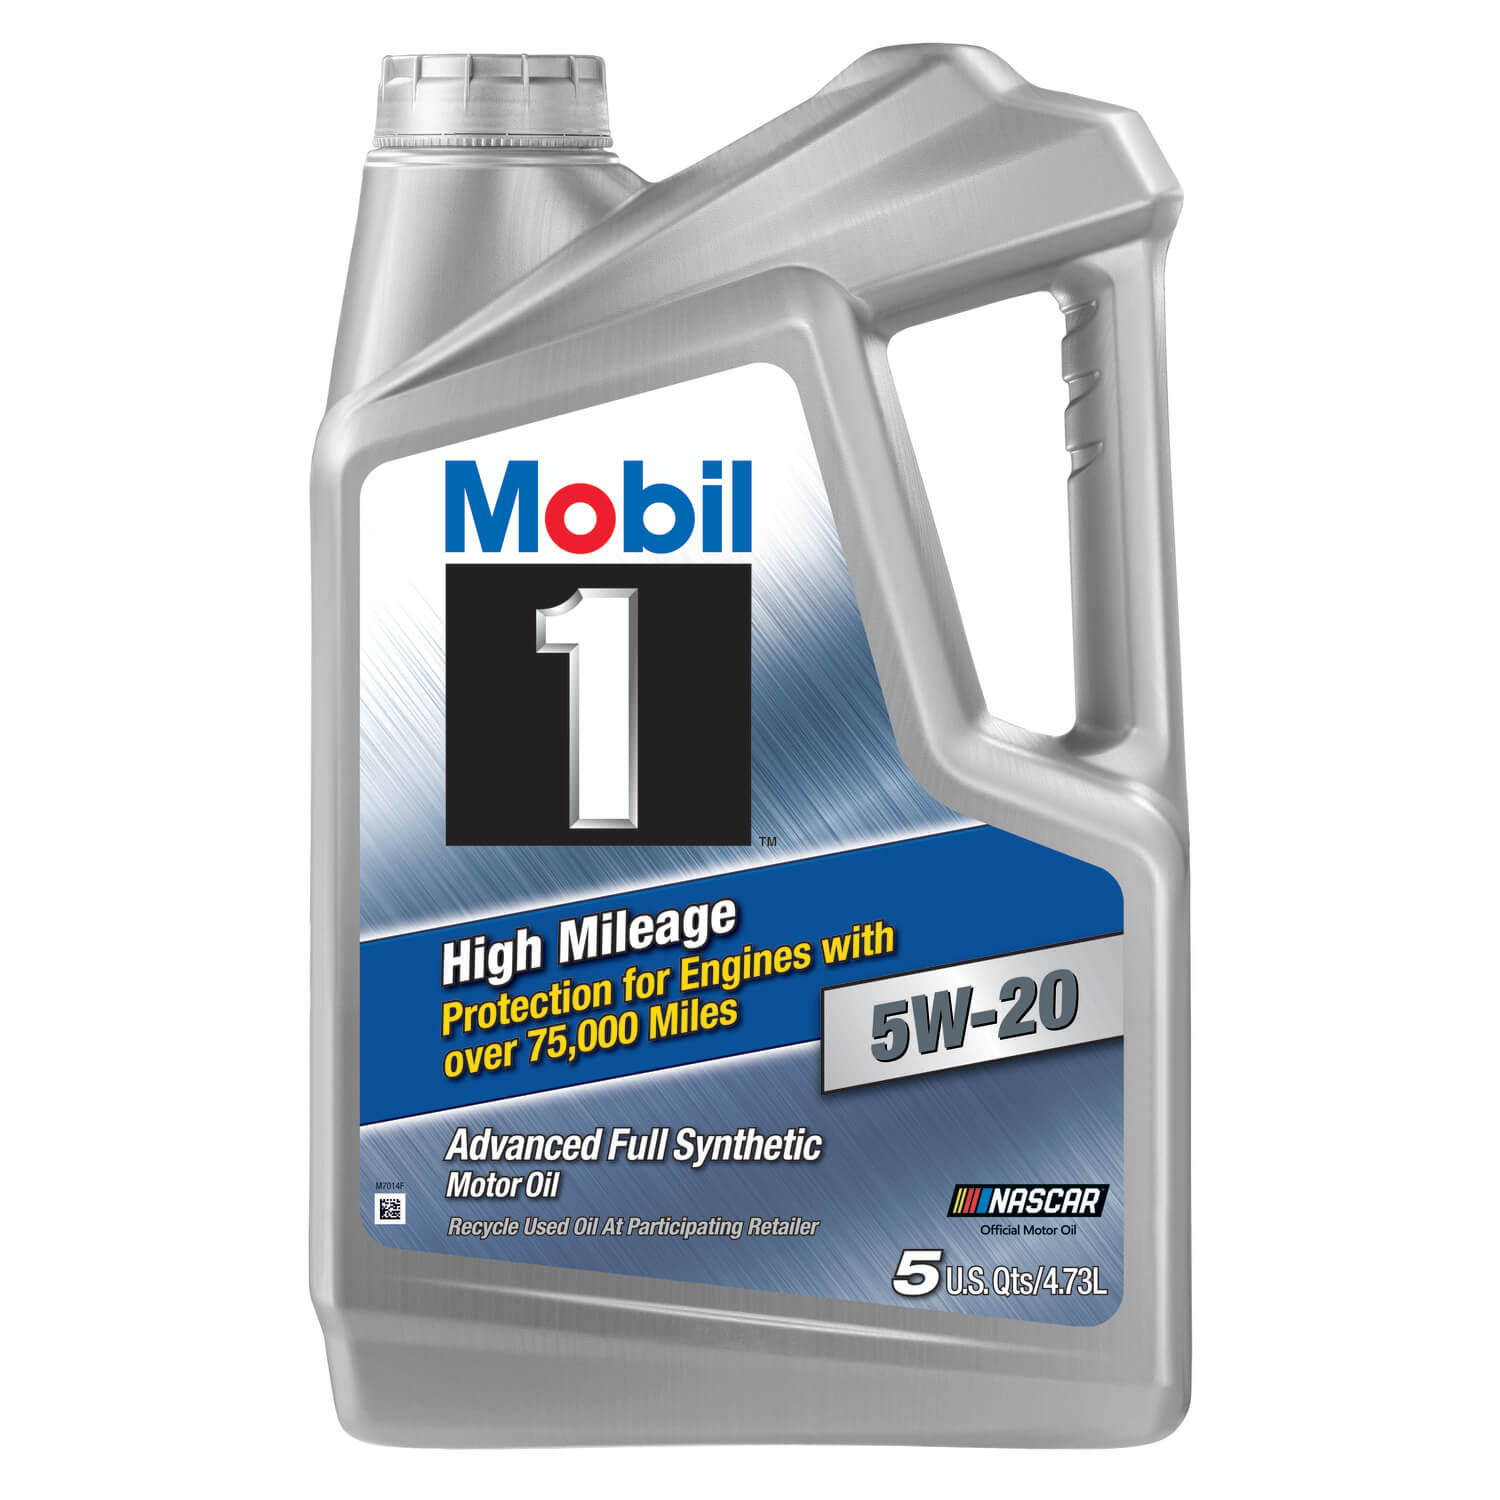 Mobil 1 High Mileage Full Synthetic Motor Oil 5W-20, 5 Quart